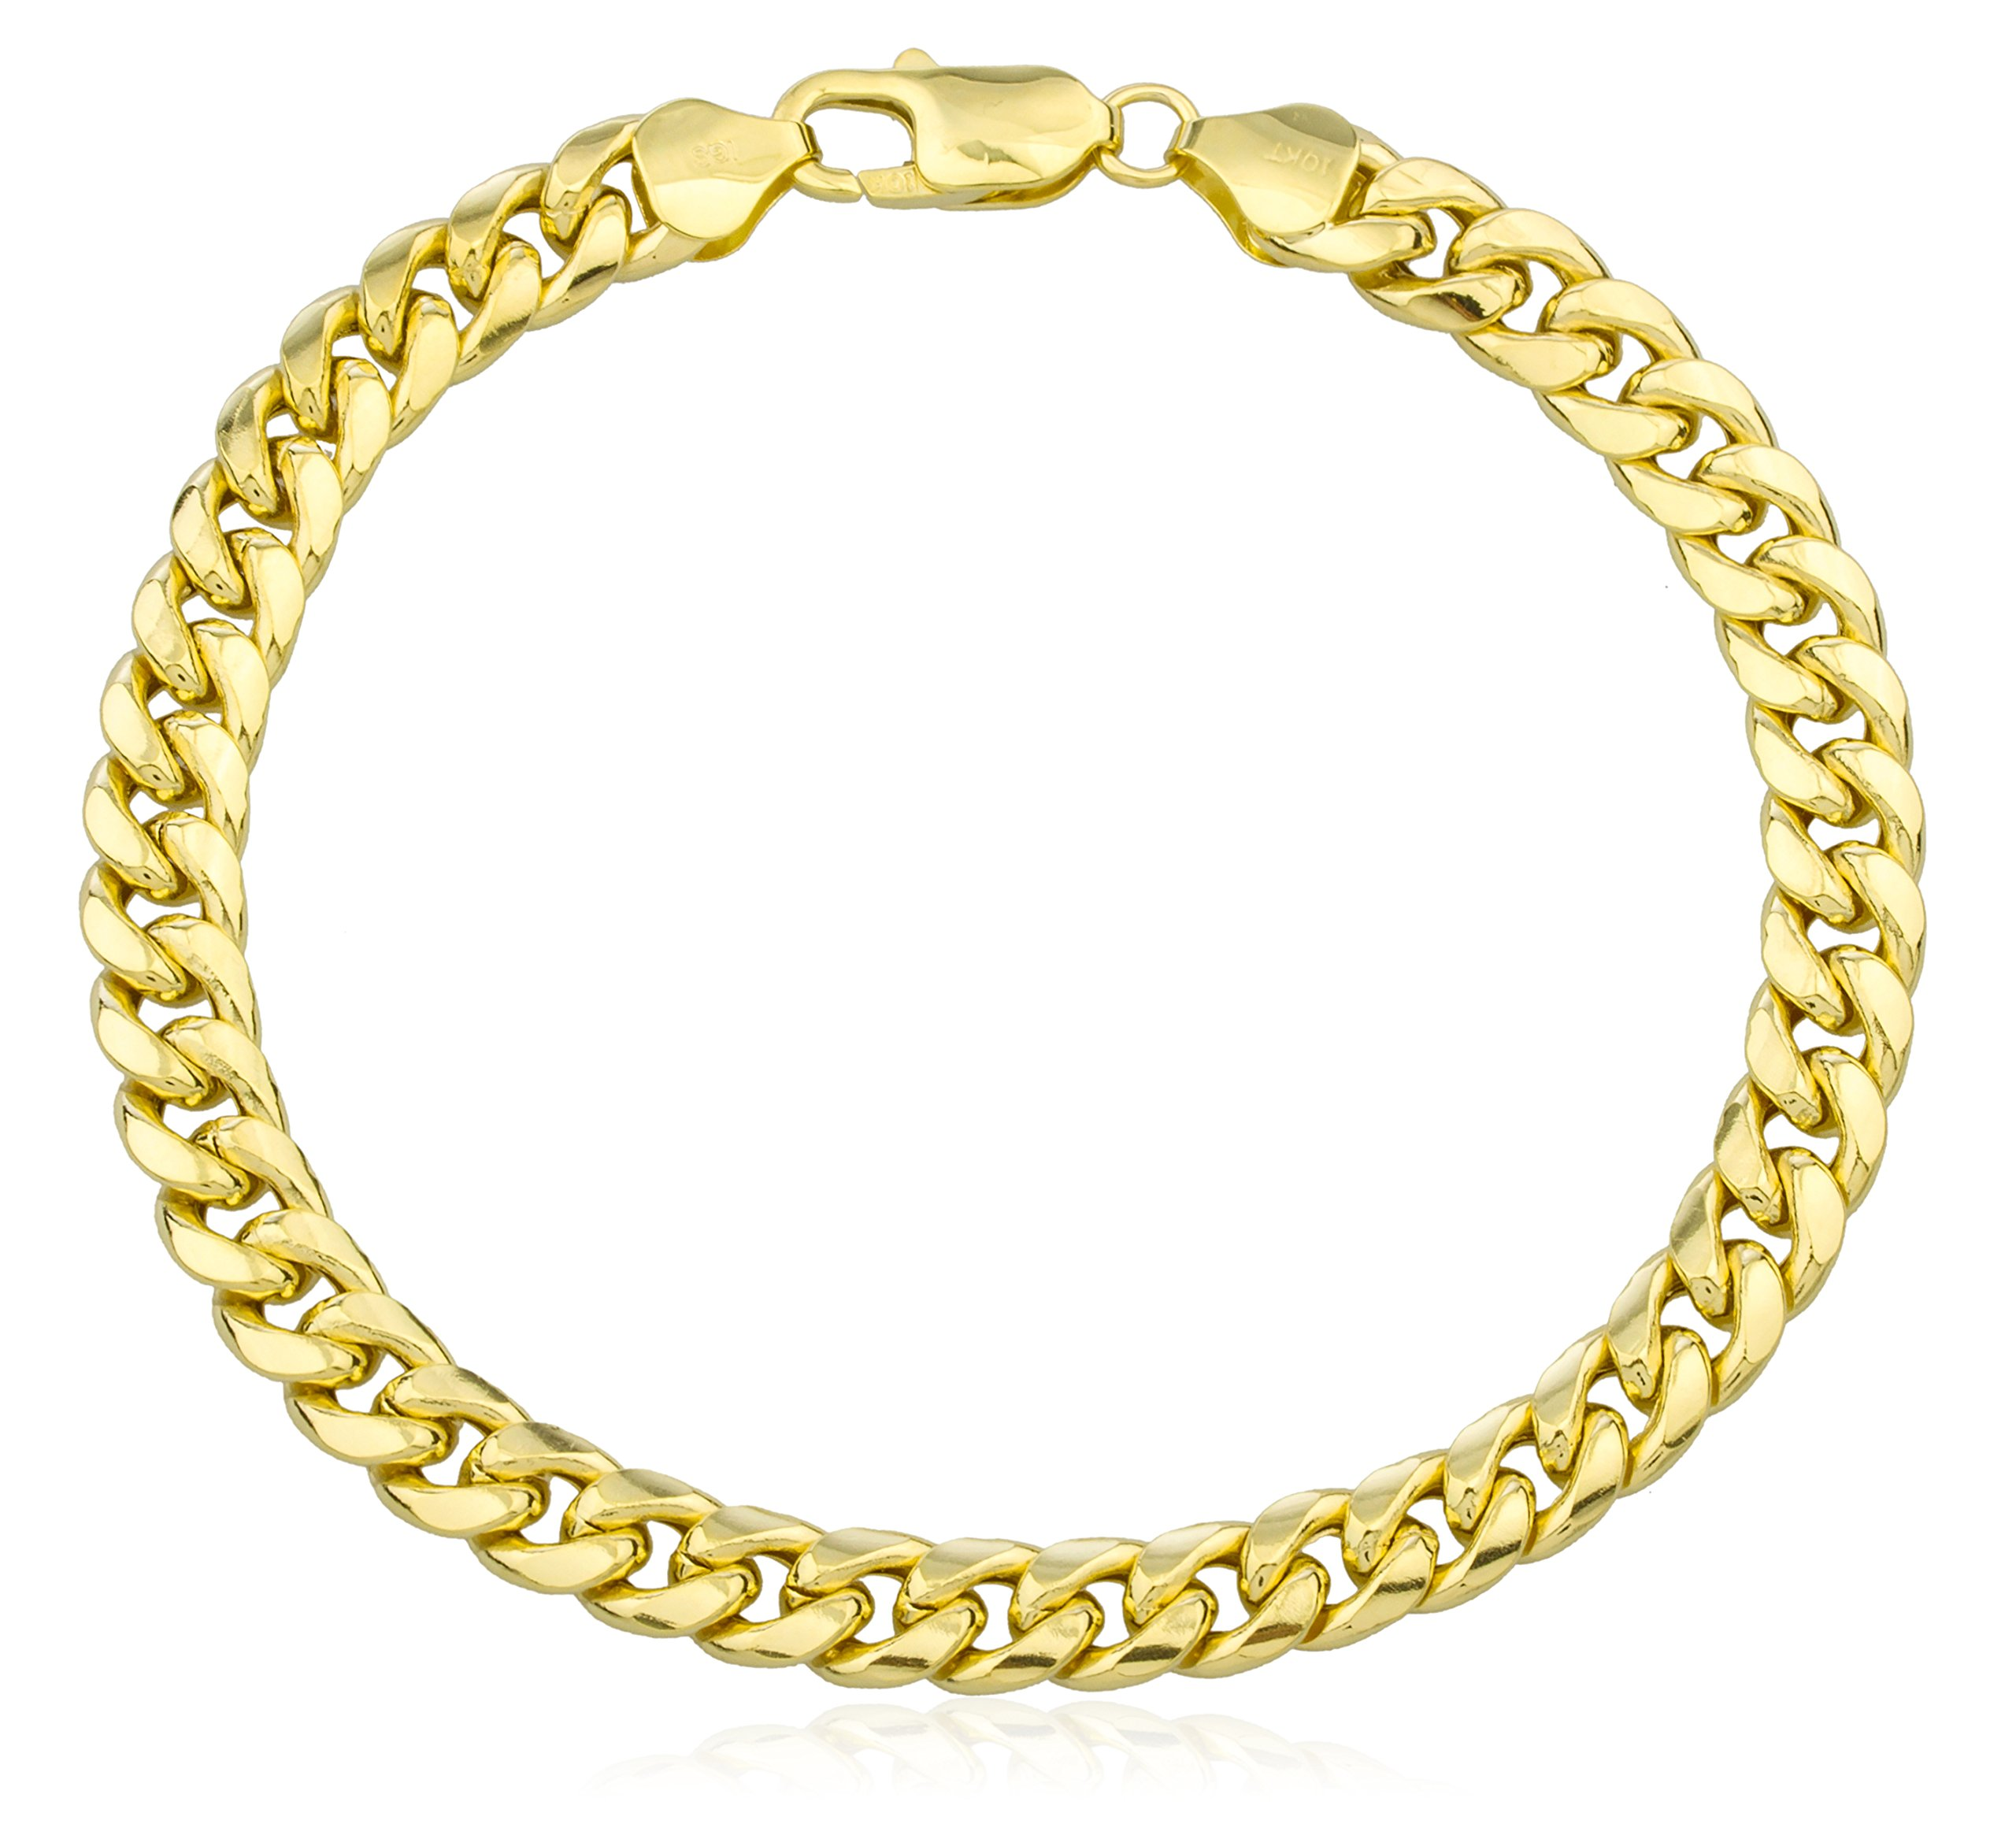 10k Yellow Gold Bracelet 7.4mm Miami Cuban, 9 Inch (GO-1445 Bracelet)